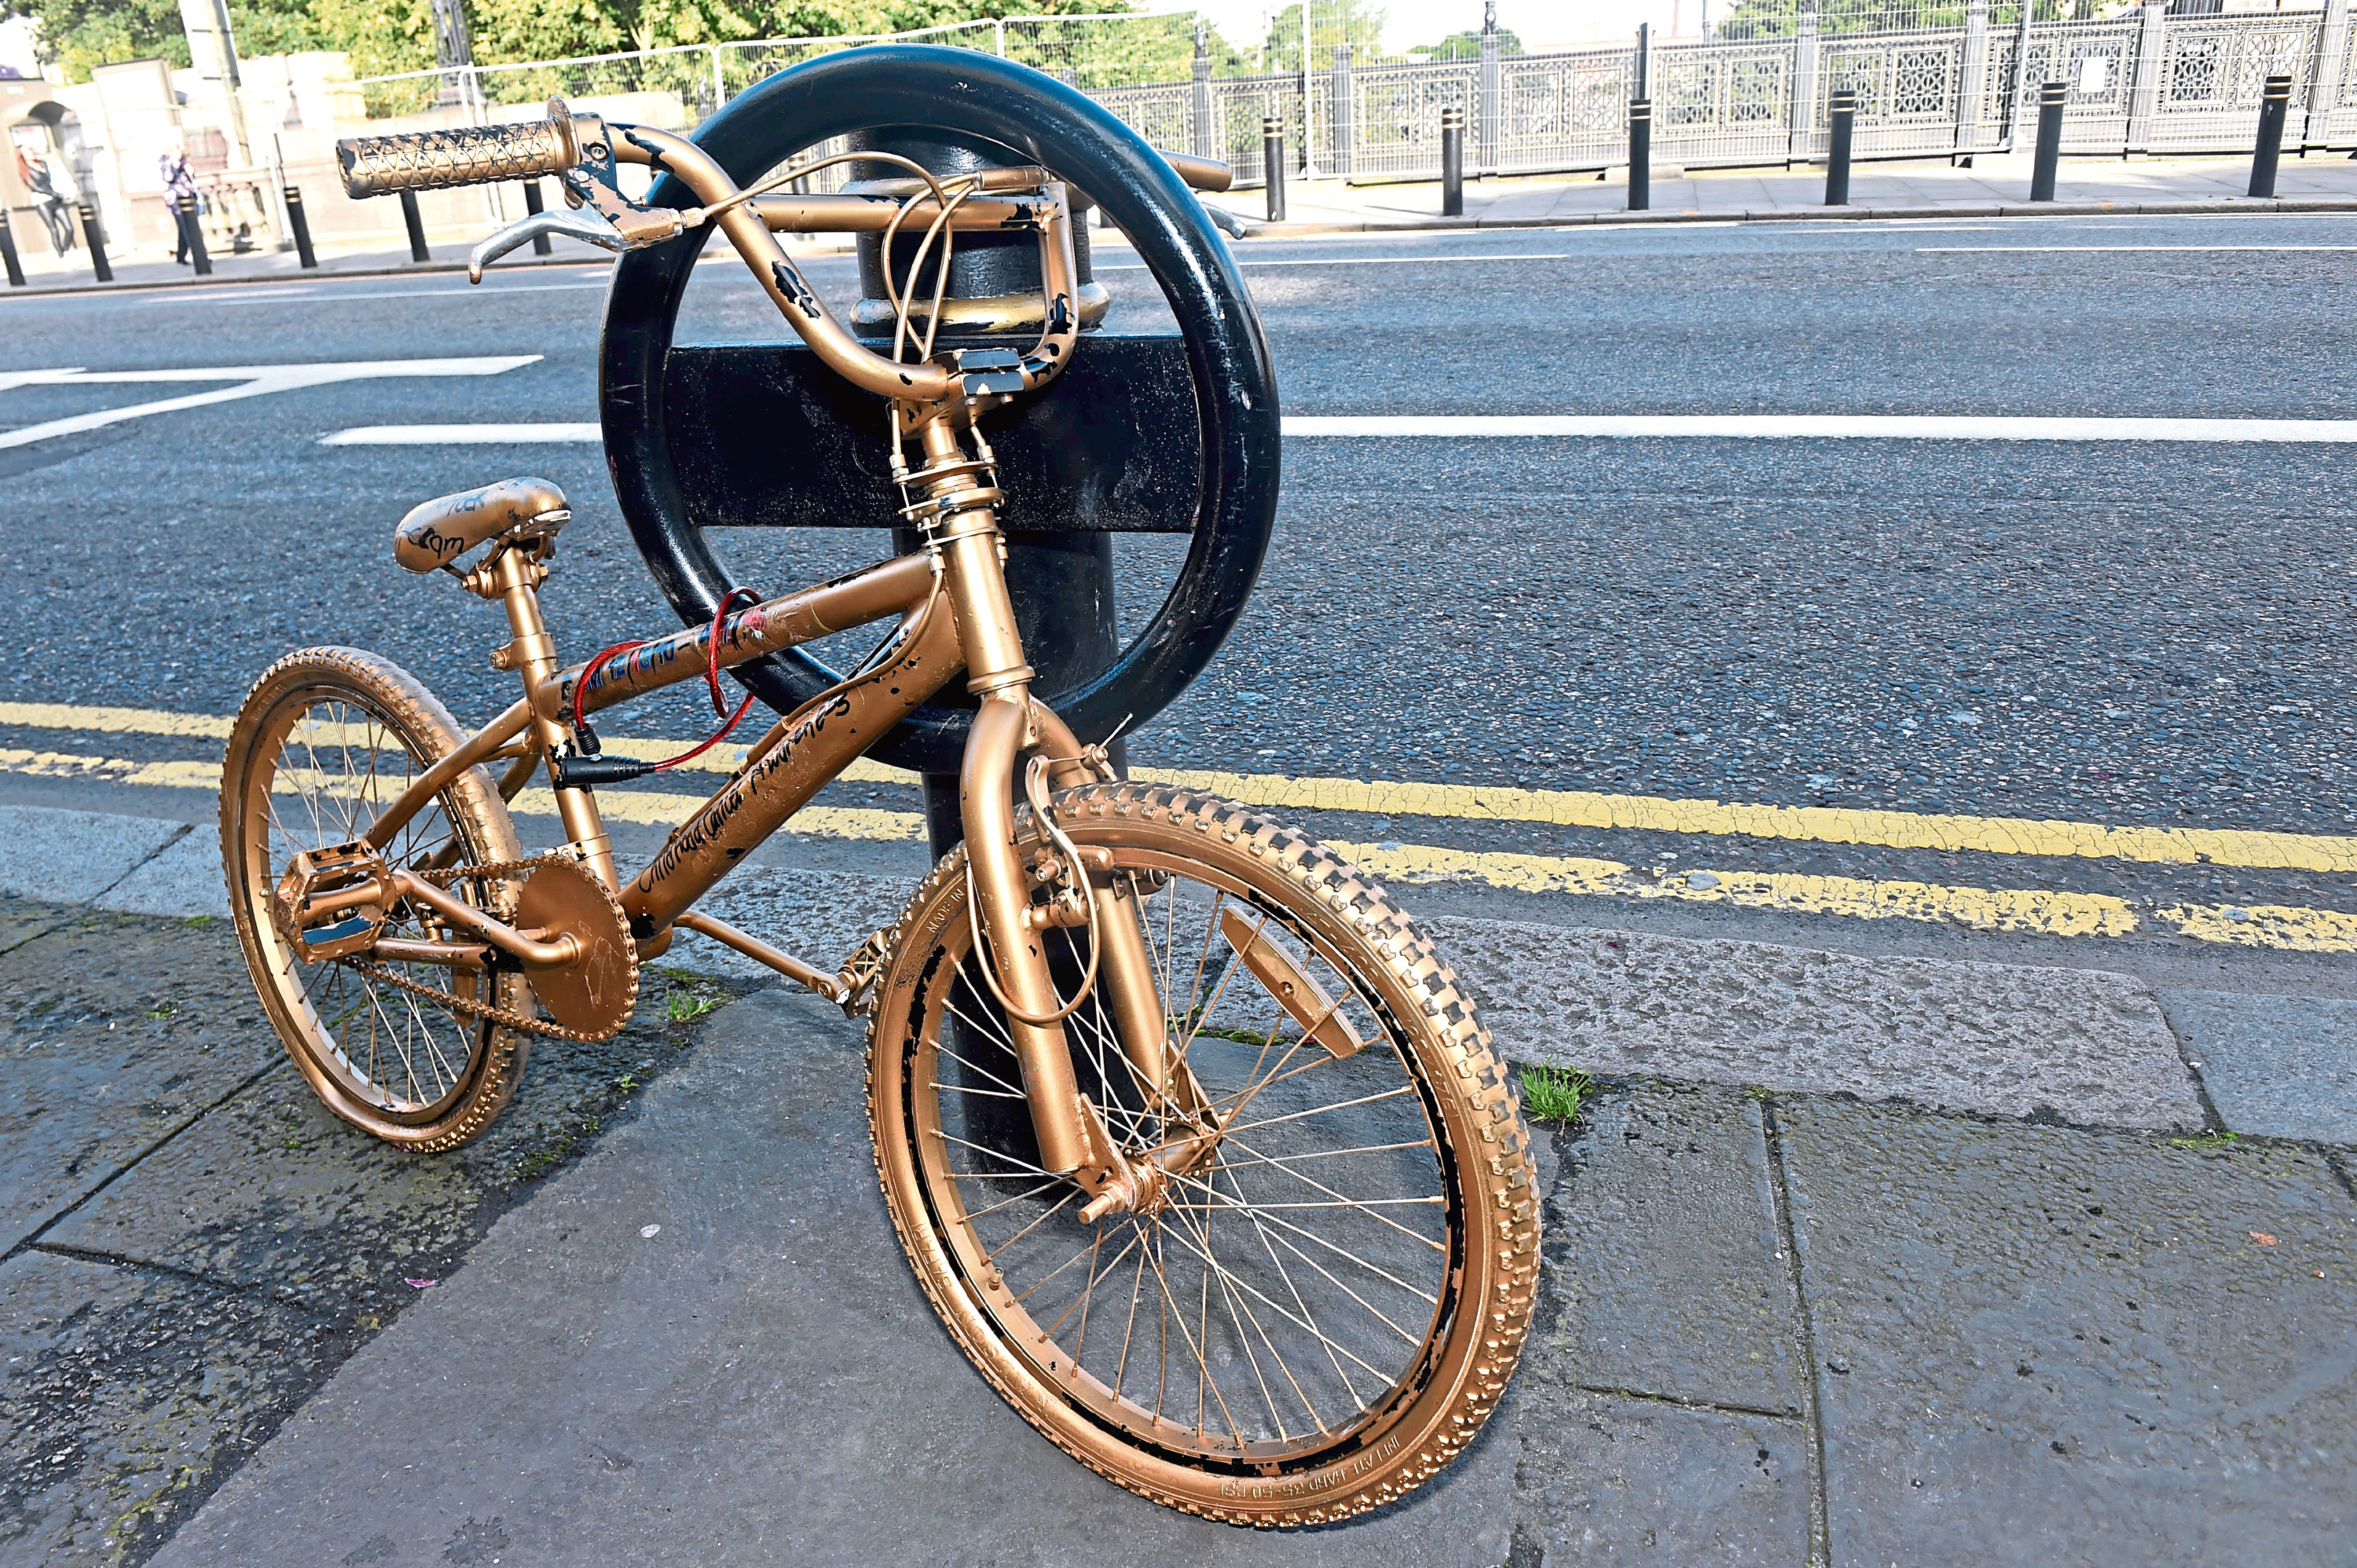 One of the bikes on Union Street as part of the Glow Gold for September.